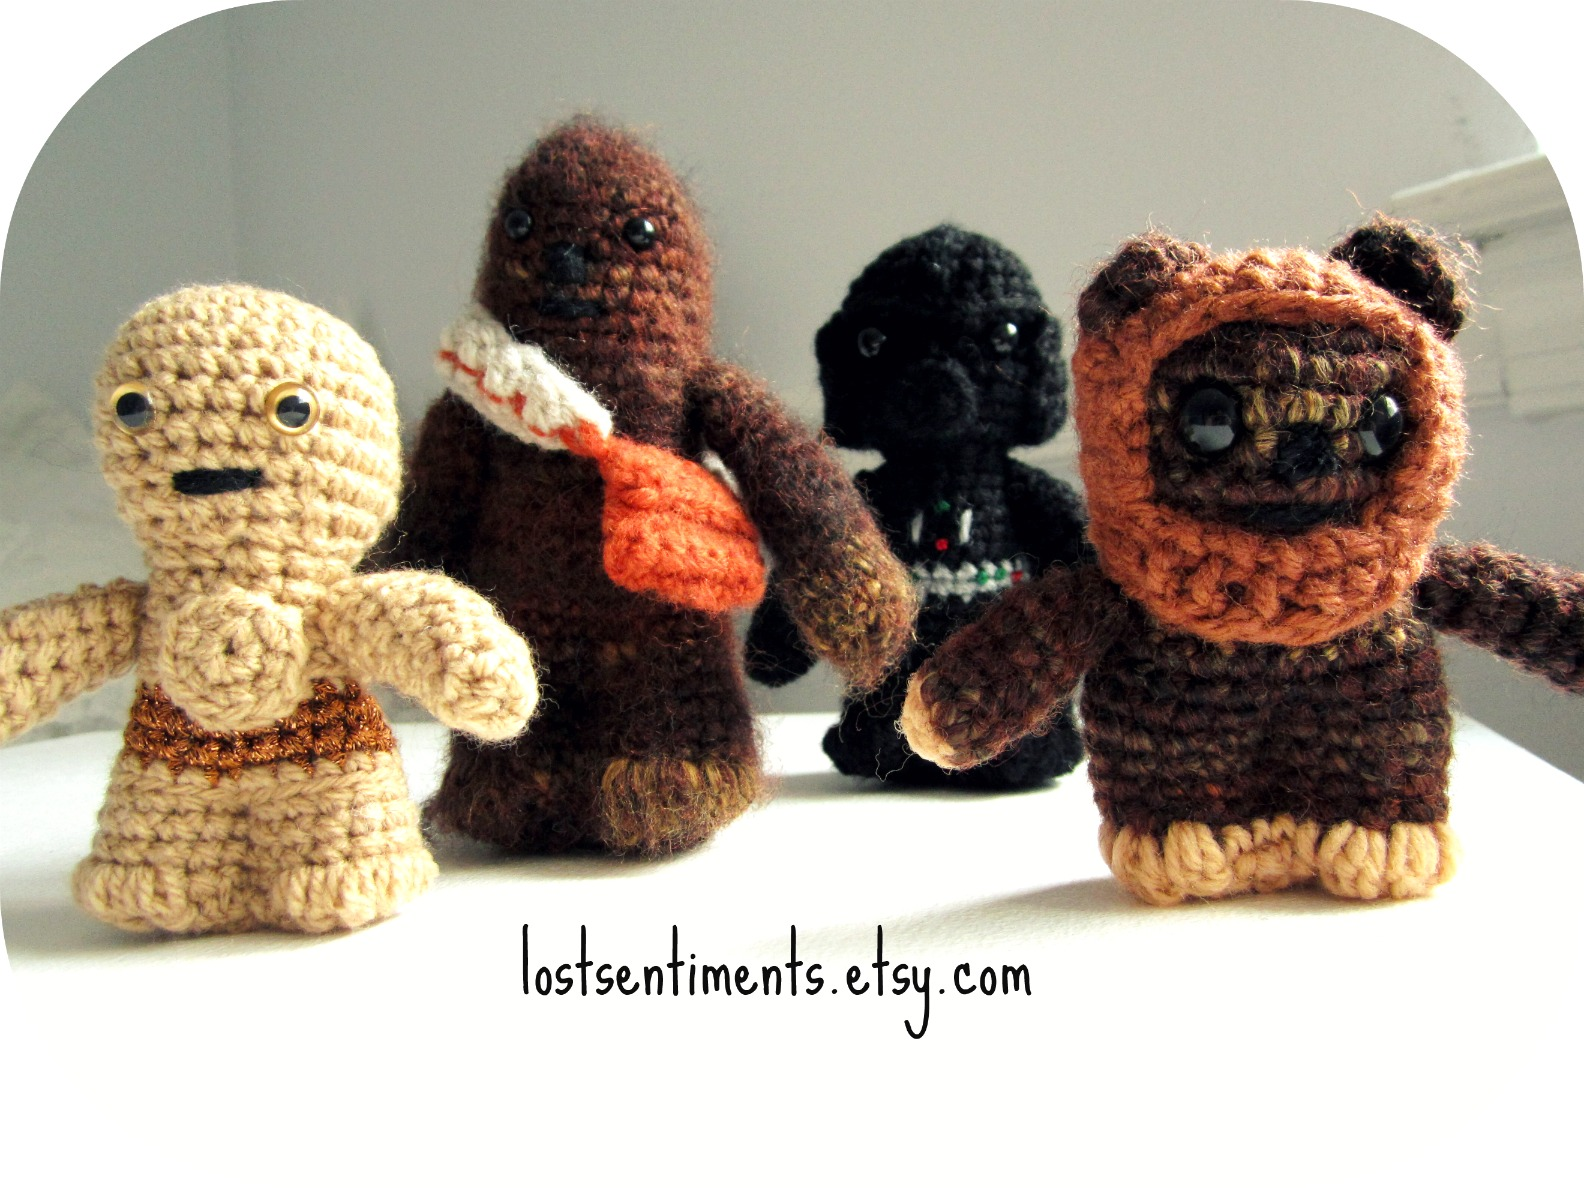 Amigurumi Star Wars Patterns : Lostsentiments: star wars amigurumi set headed overseas